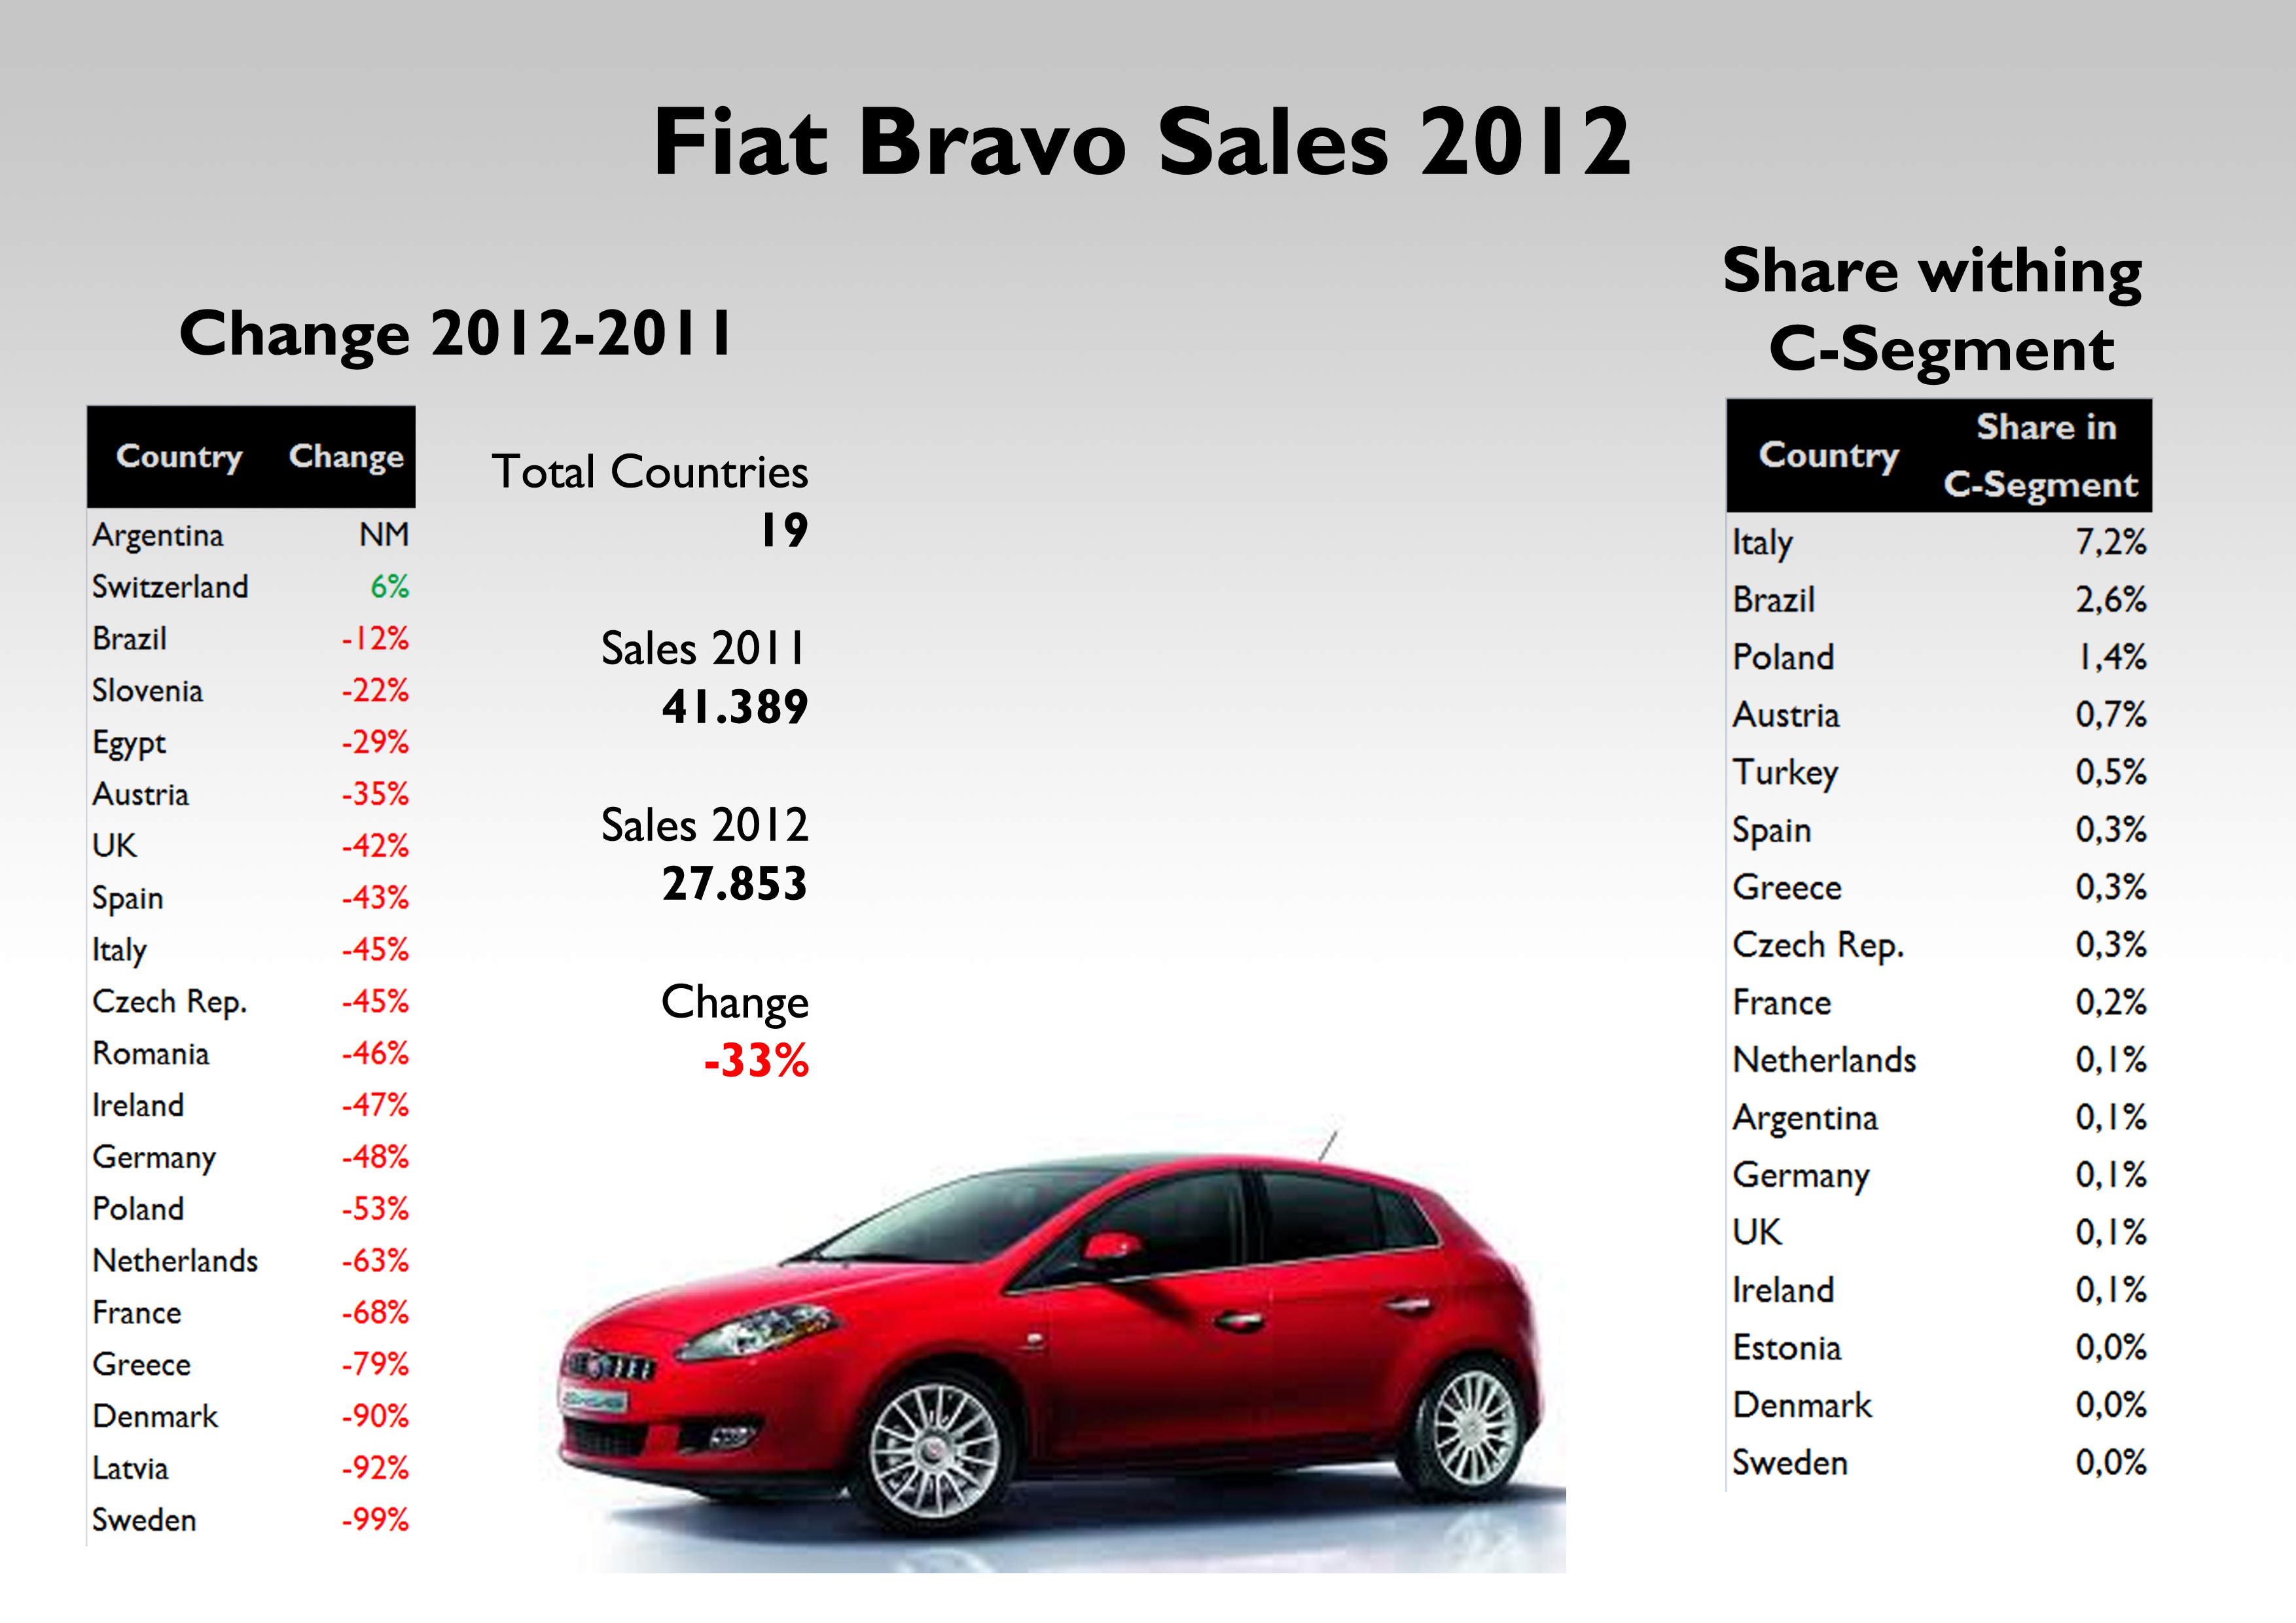 Fiat Bravo 2012 Full Year Analysis in addition White Fiat 500 Car   Image additionally File Fiat Cinquecento Sporting 1 1 additionally New holland as well Fiat qubo. on fiat 500 commercial